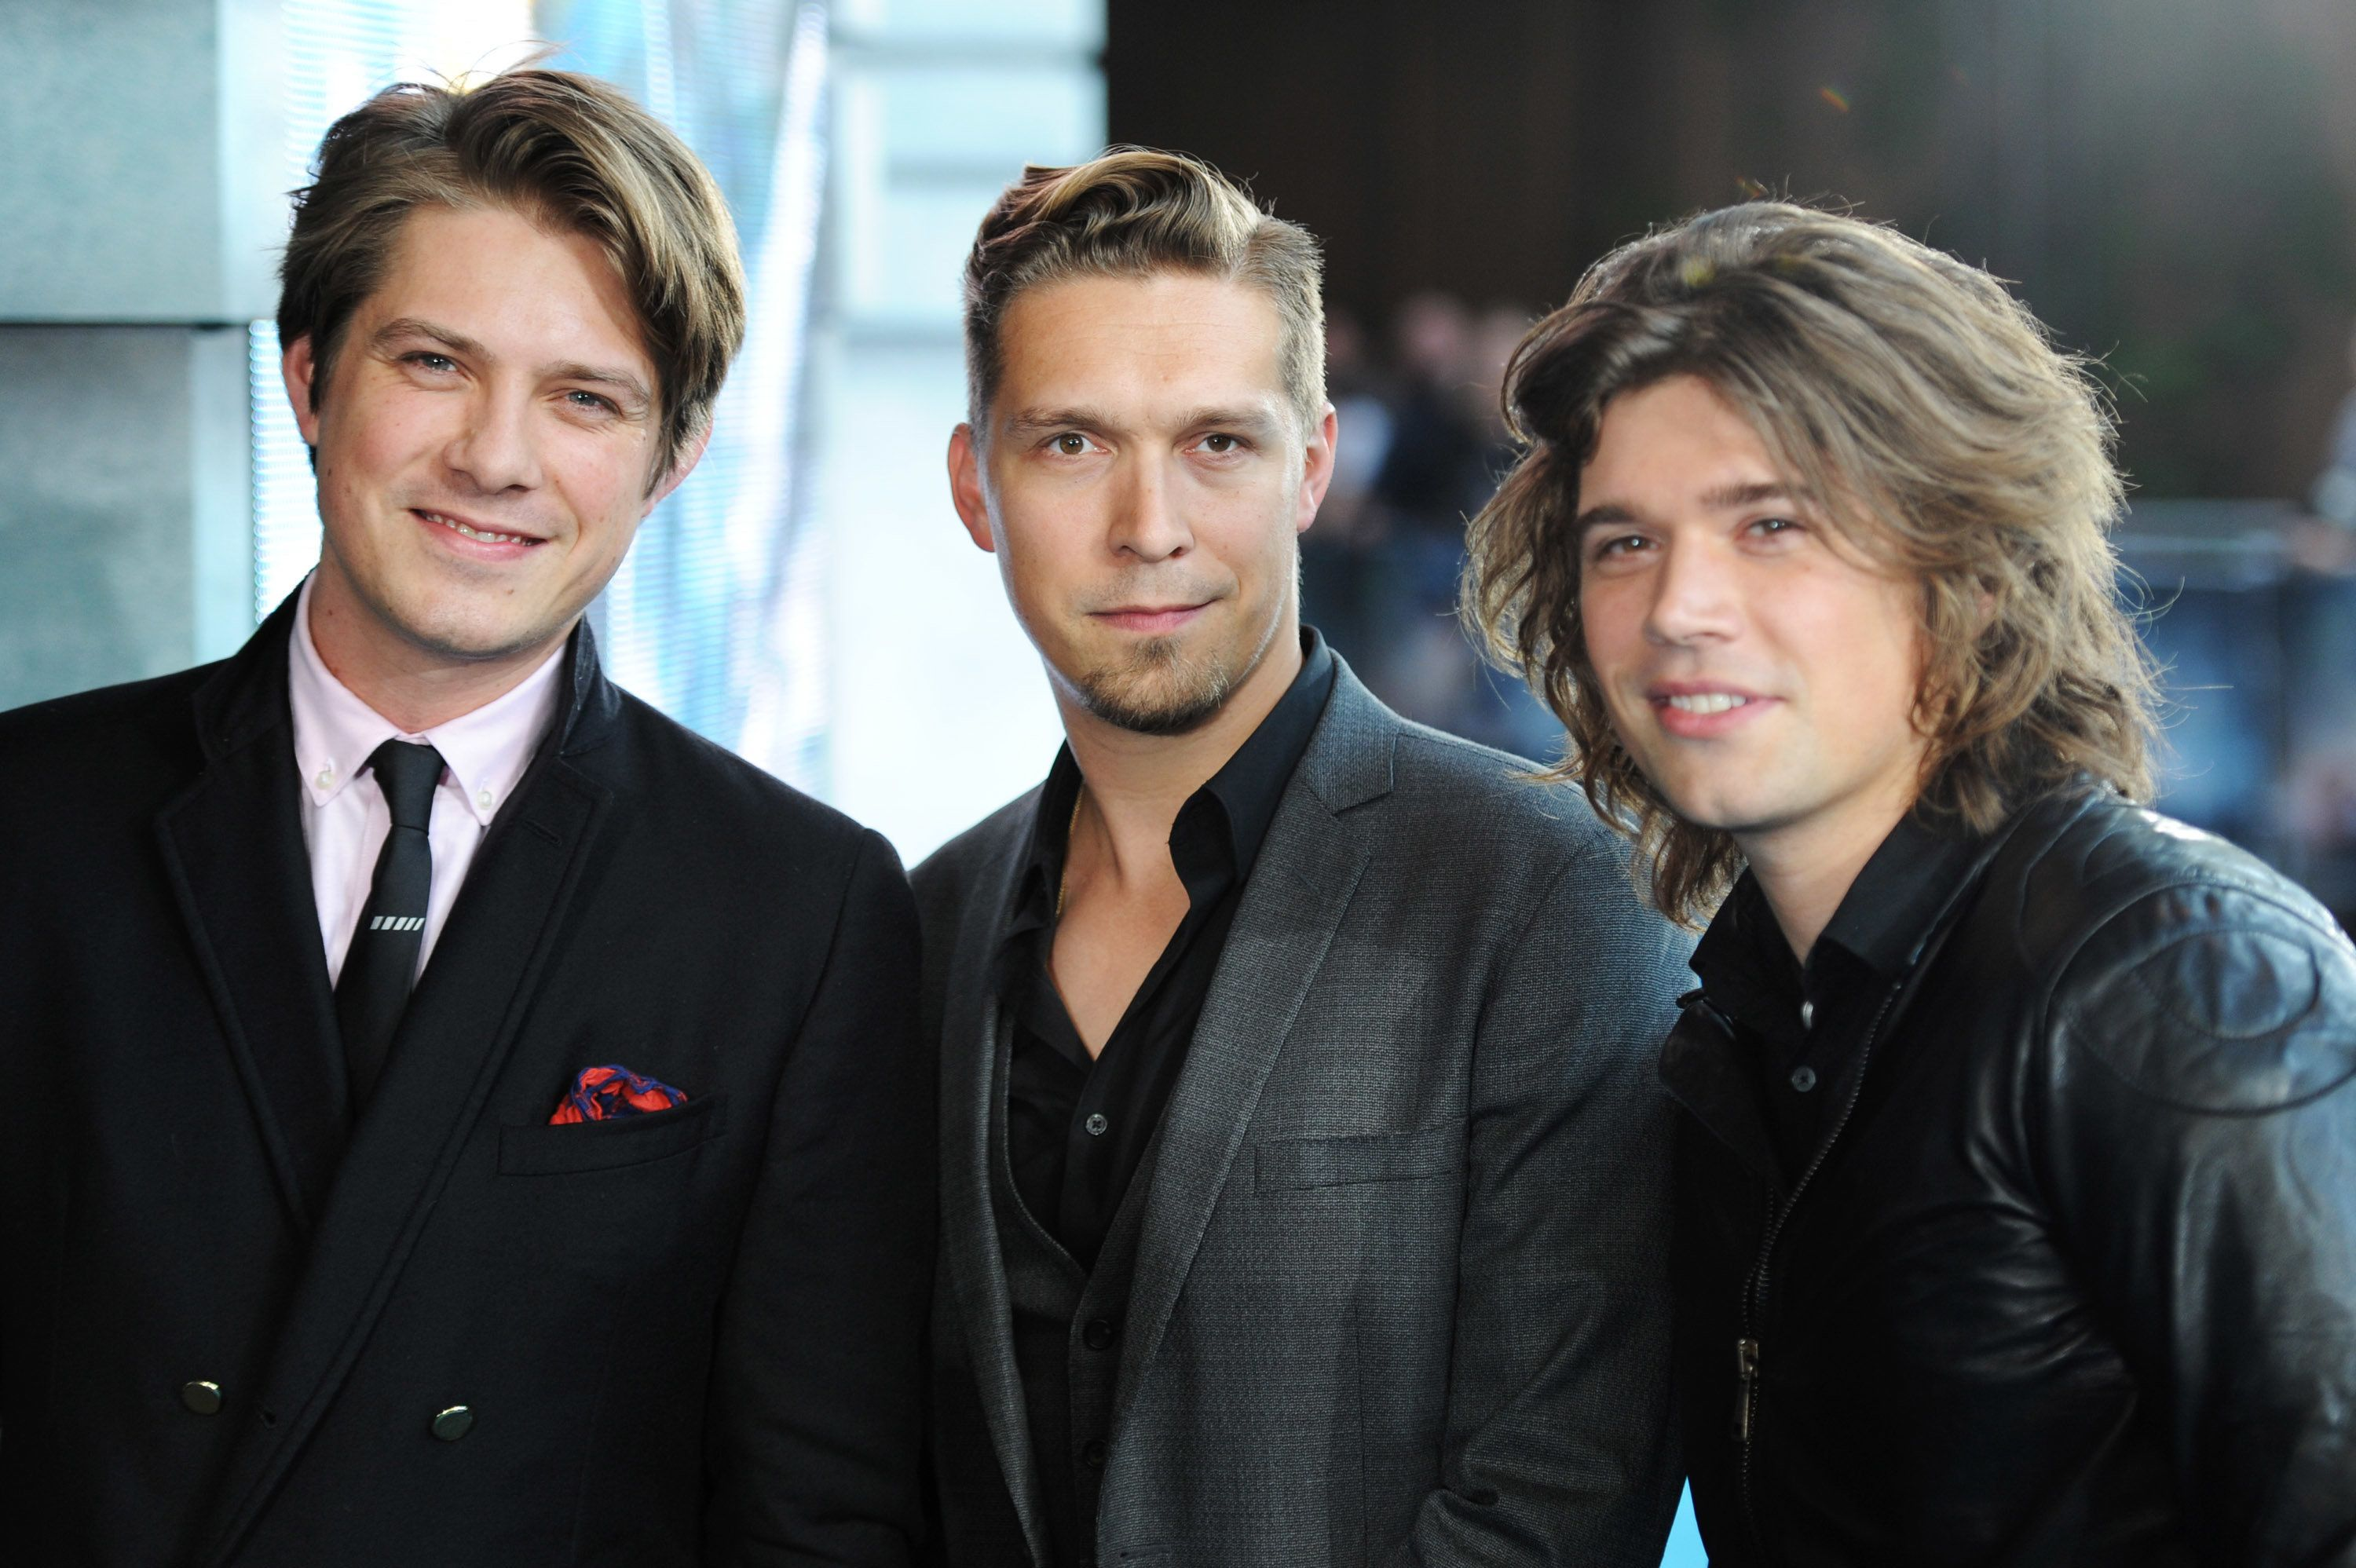 LONDON, ENGLAND - JULY 04:  (UK TABLOID NEWSPAPERS OUT) Zac Hanson, Taylor Hanson and Isaac Hanson of Hanson attend the European premiere of 'Pacific Rim' at The BFI IMAX on July 4, 2013 in London, England.  (Photo by Dave Hogan/Getty Images)